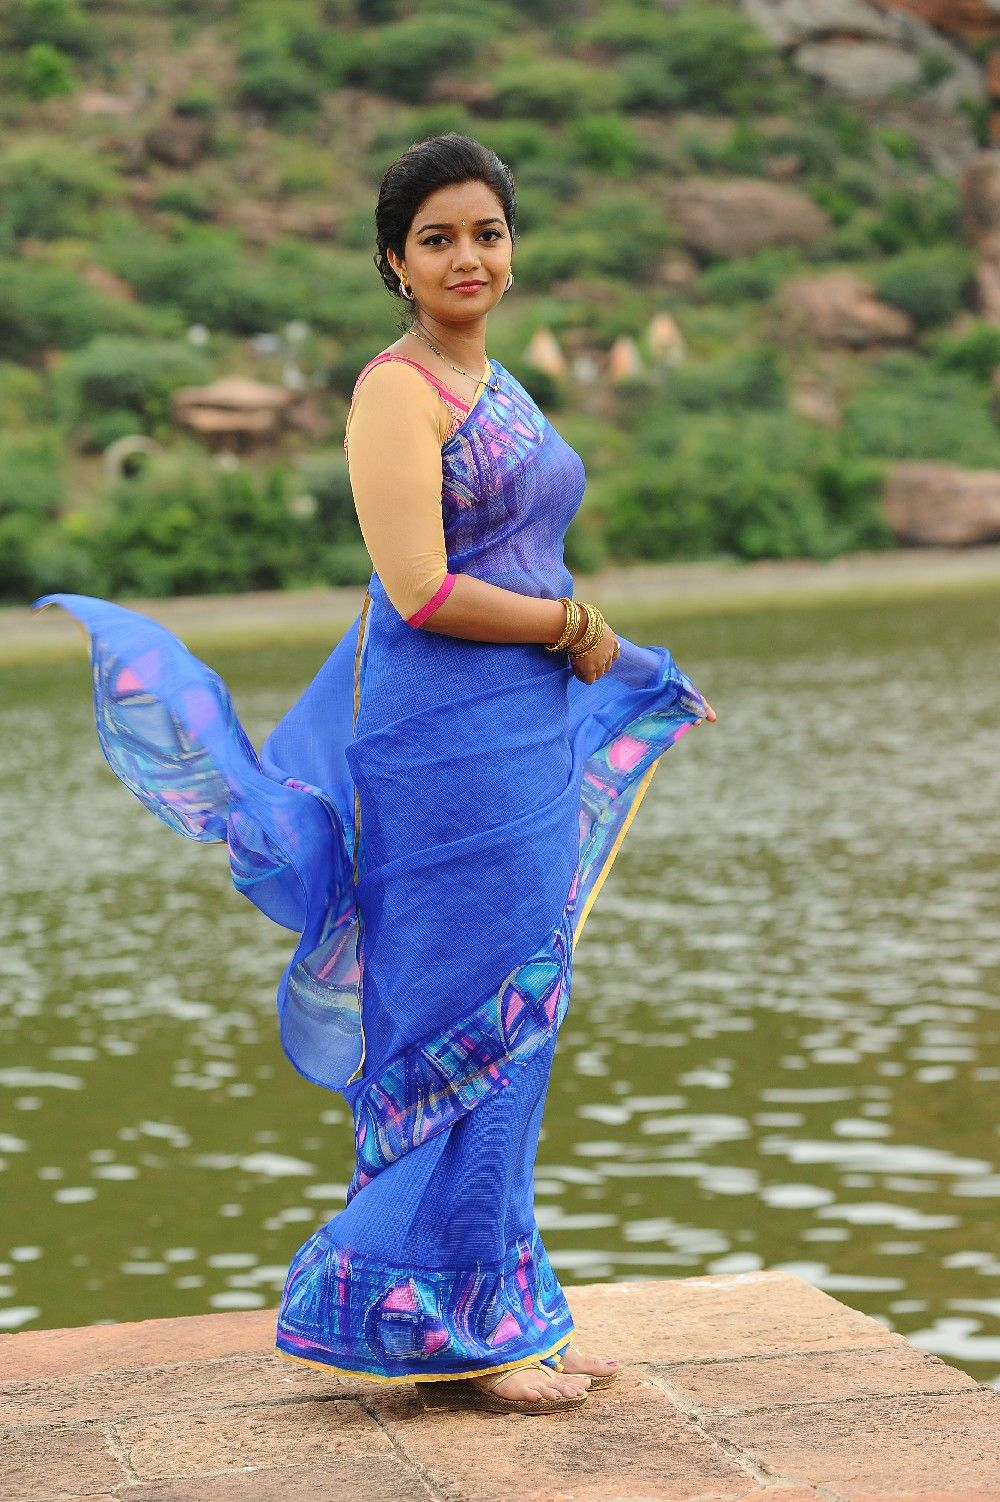 colors swathi tripura, Swathi Stills From Tripura Movie ...